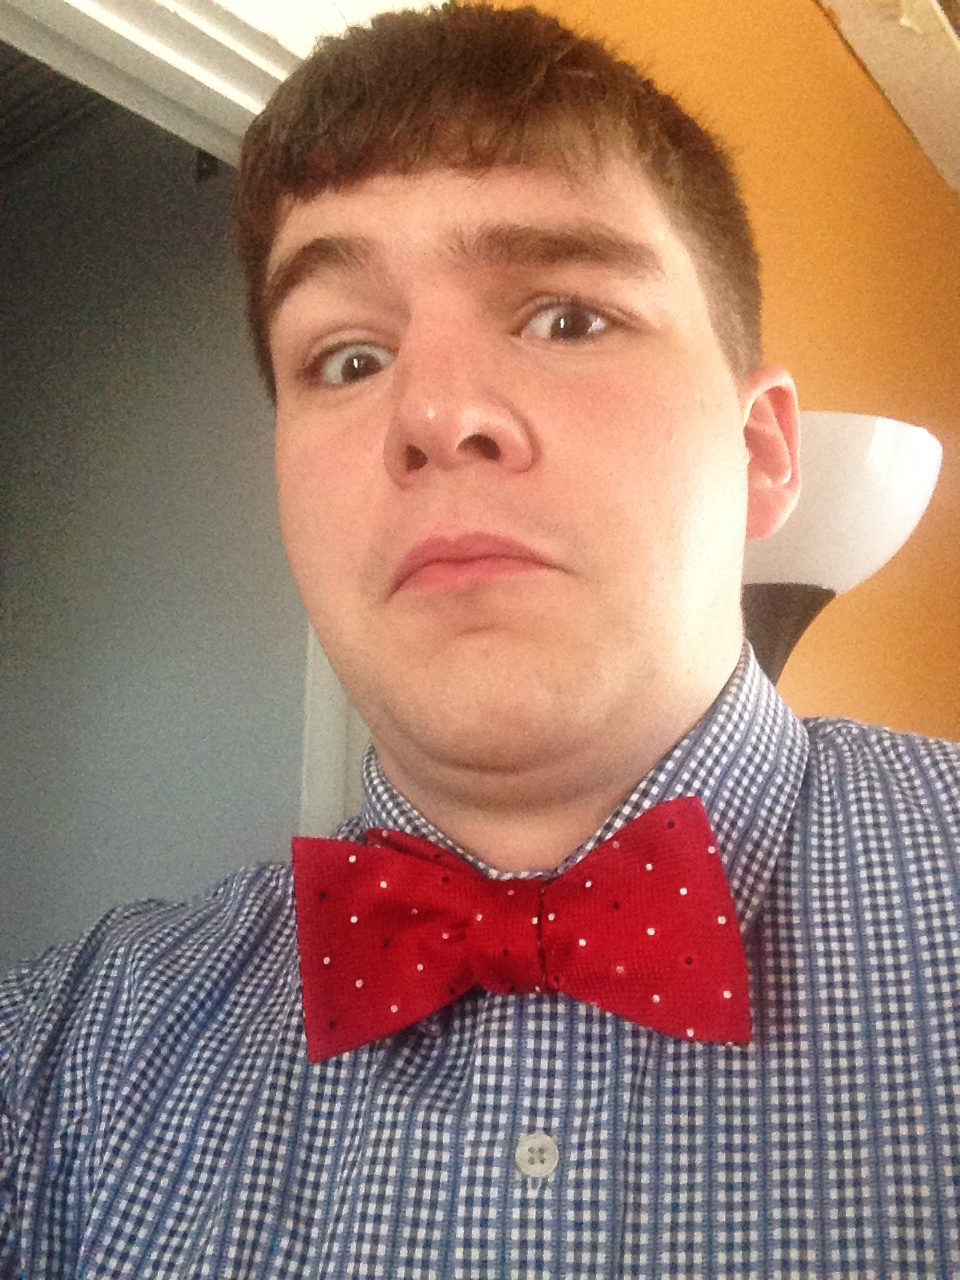 Cannon wearing a bowtie